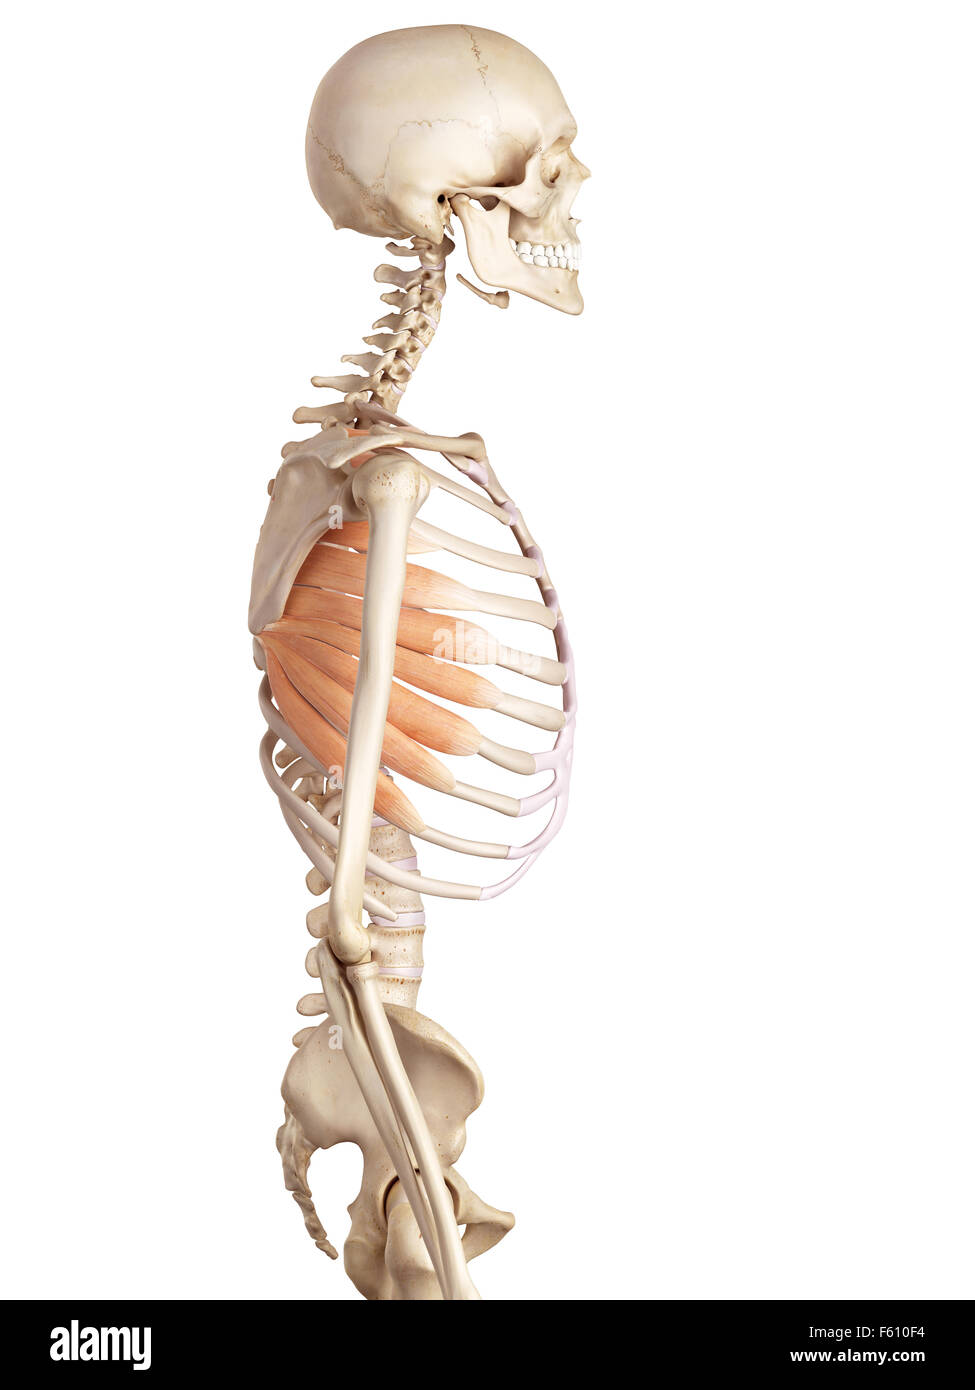 Serratus Anterior Muscle Stock Photos & Serratus Anterior Muscle ...